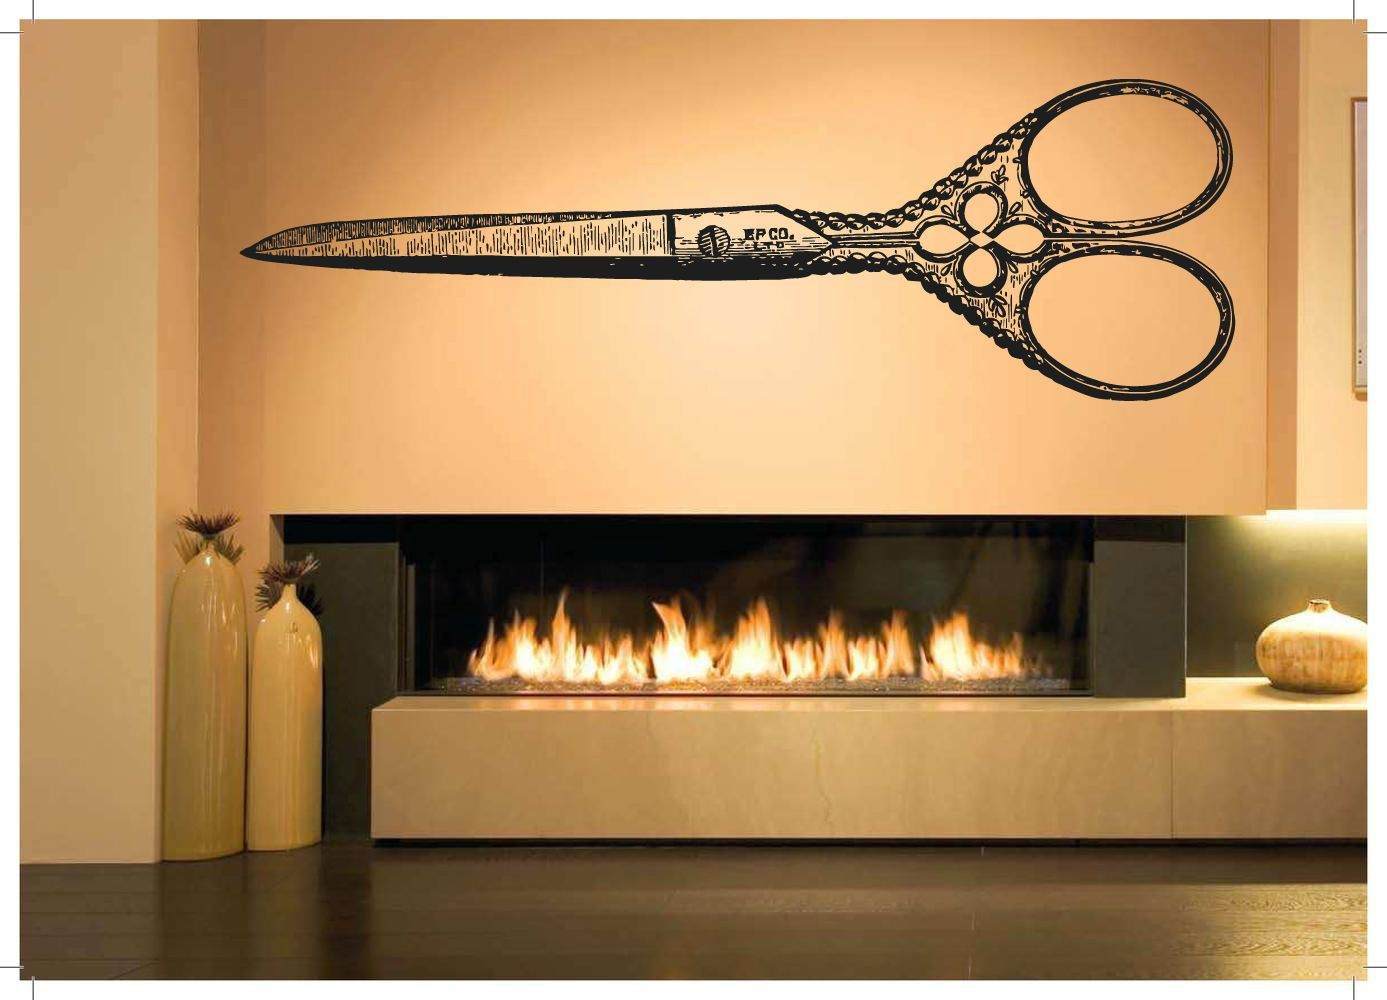 Wall Room Decor Art Vinyl Sticker Mural Decal Antique Scissors Big ...